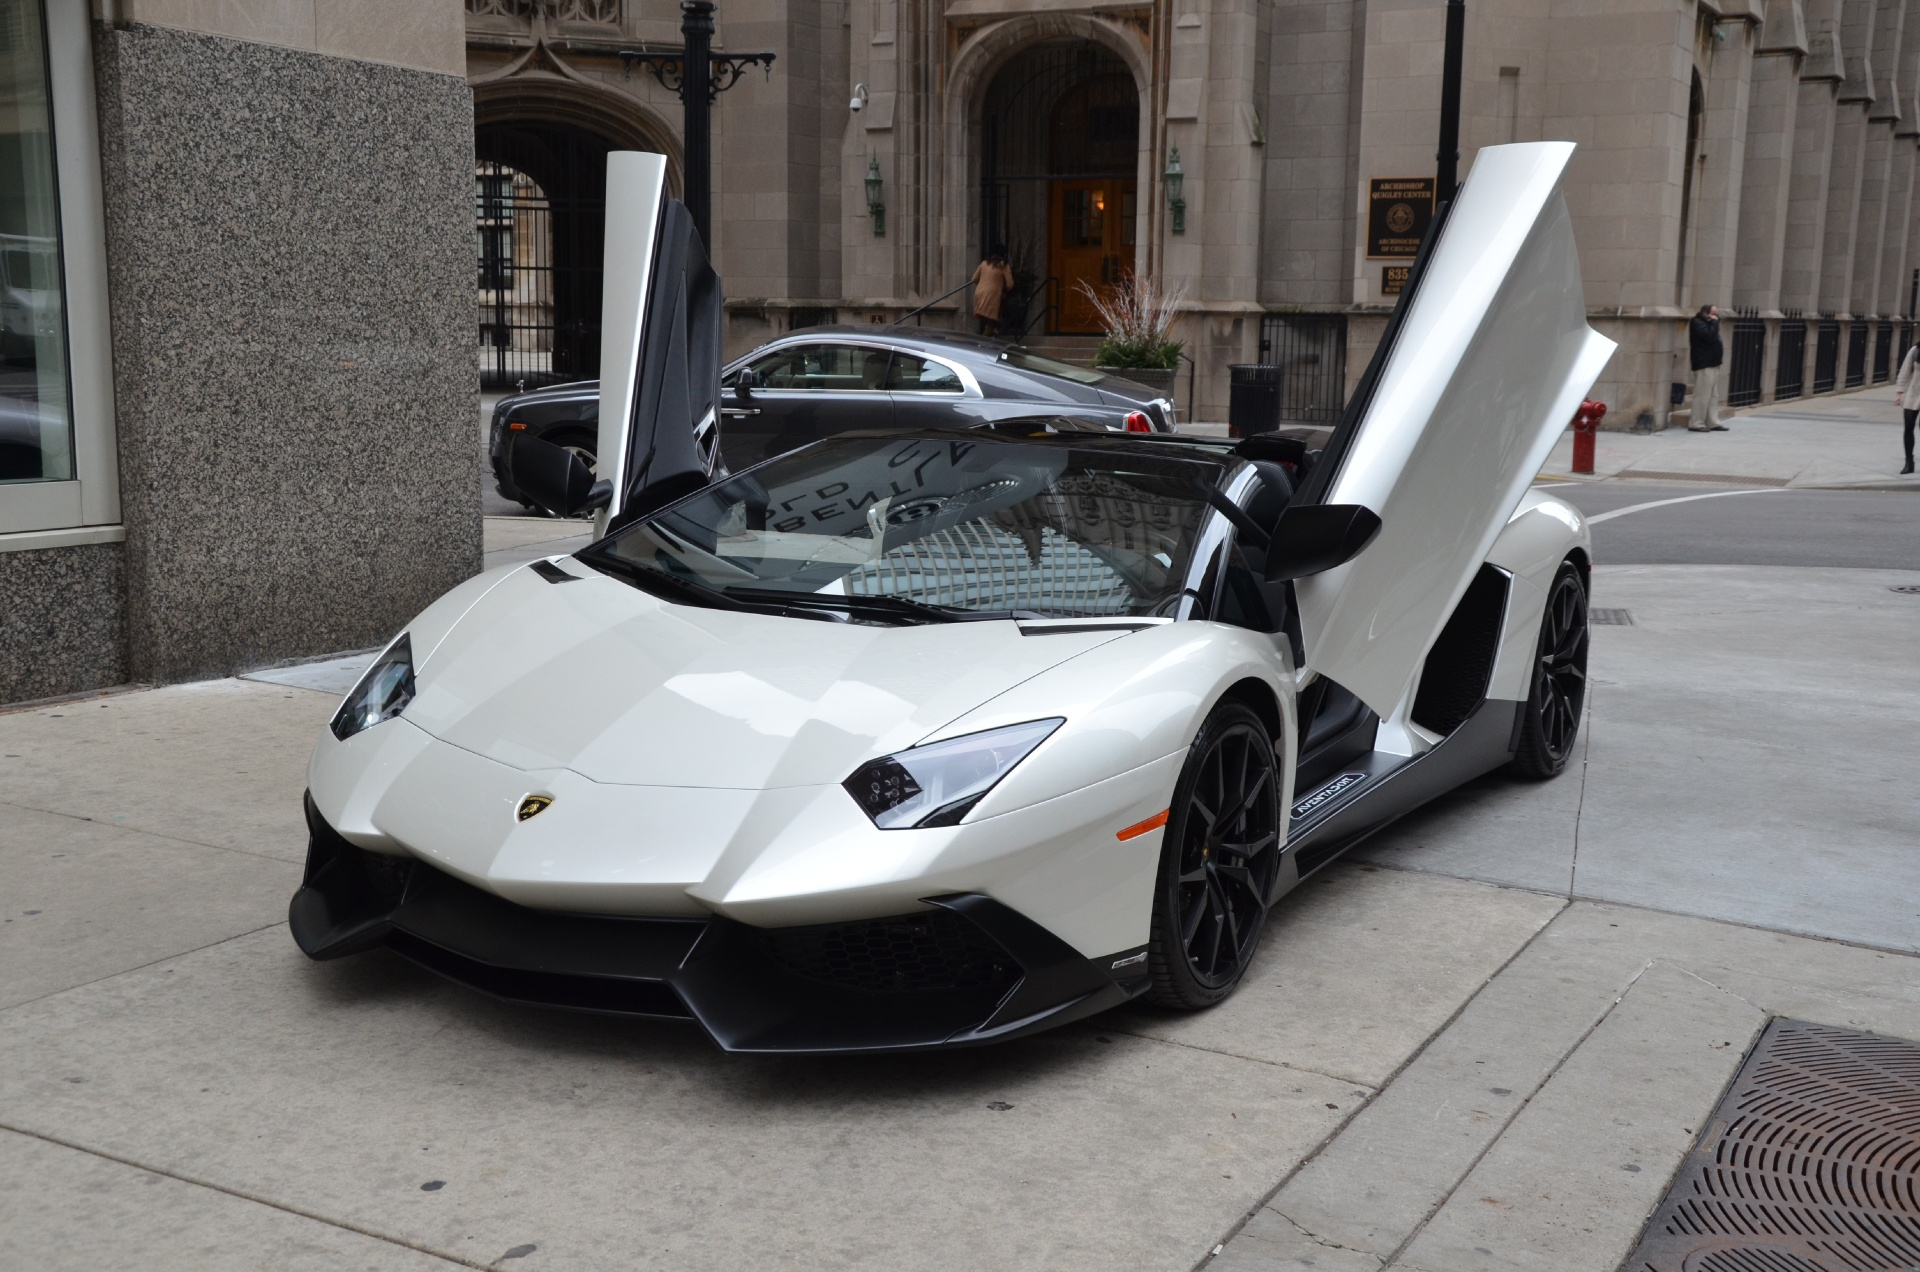 aventador and lamborghini s price specs sale for photos driver roadster reviews placement car